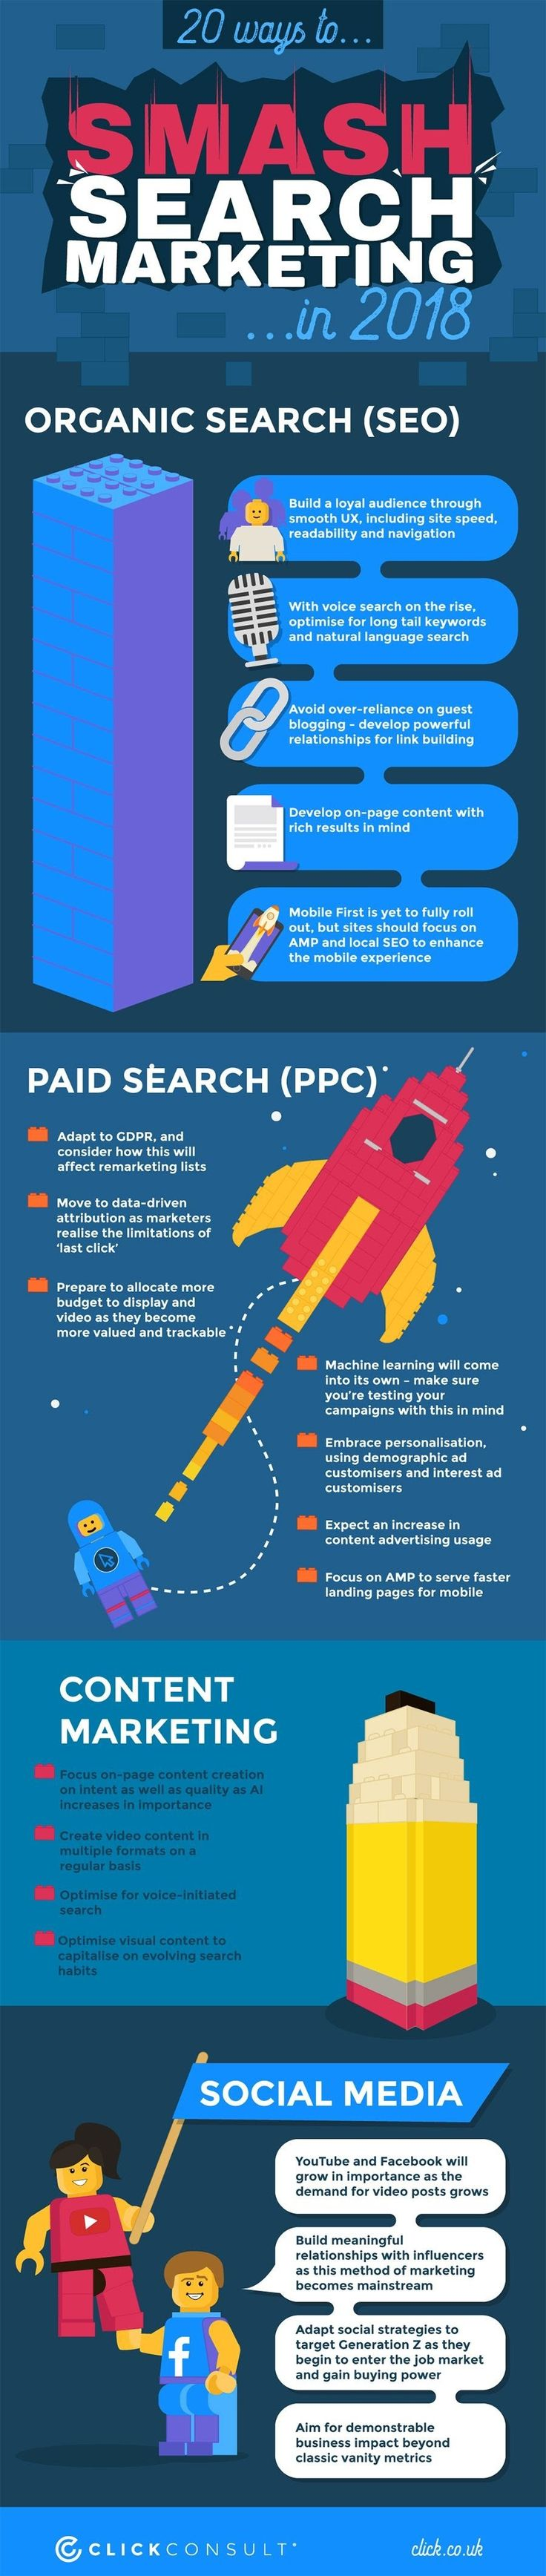 20 Ways to Smash Search Marketing in 2018 [Infographic]   Social Media Today